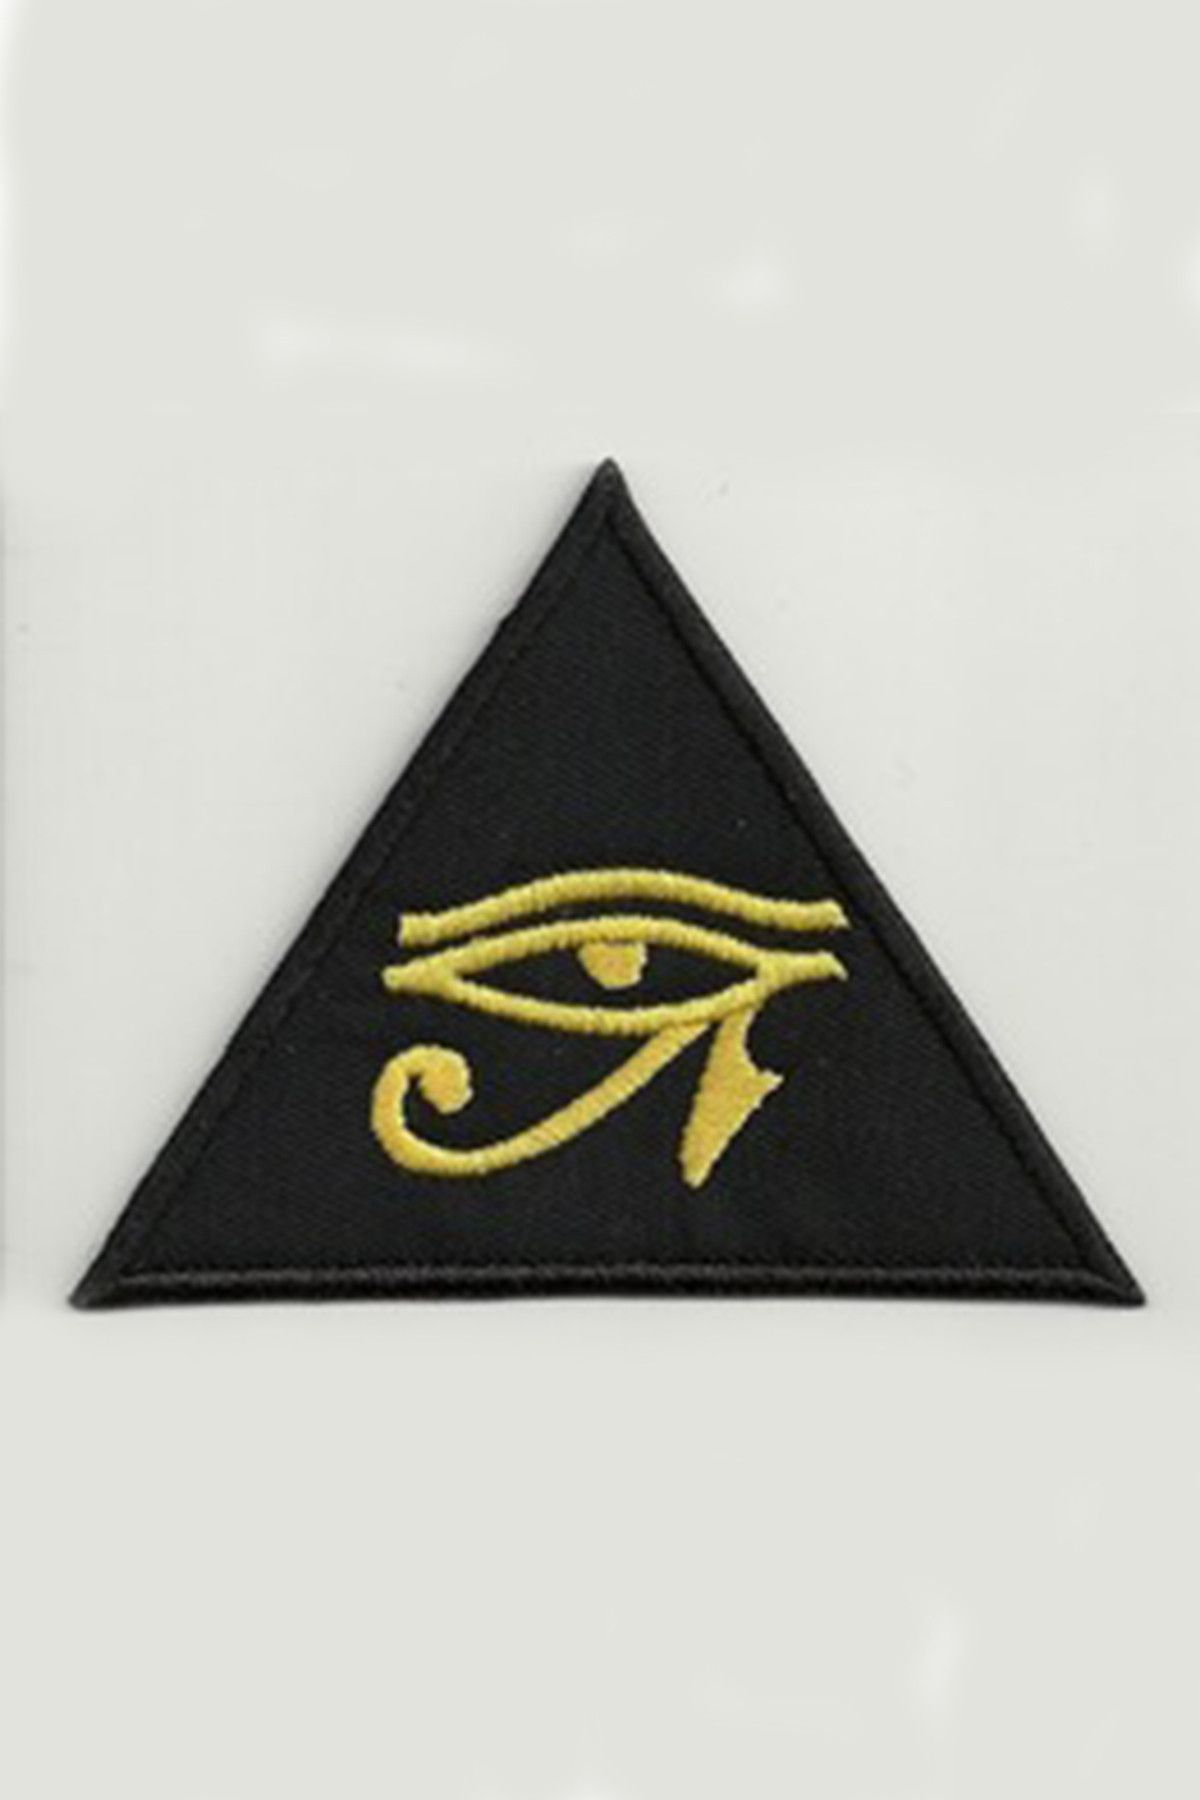 Eye of horus occult iron on patch egyptian symbols gold eyes the eye of horus is an ancient egyptian symbol of protection royal power and good buycottarizona Image collections